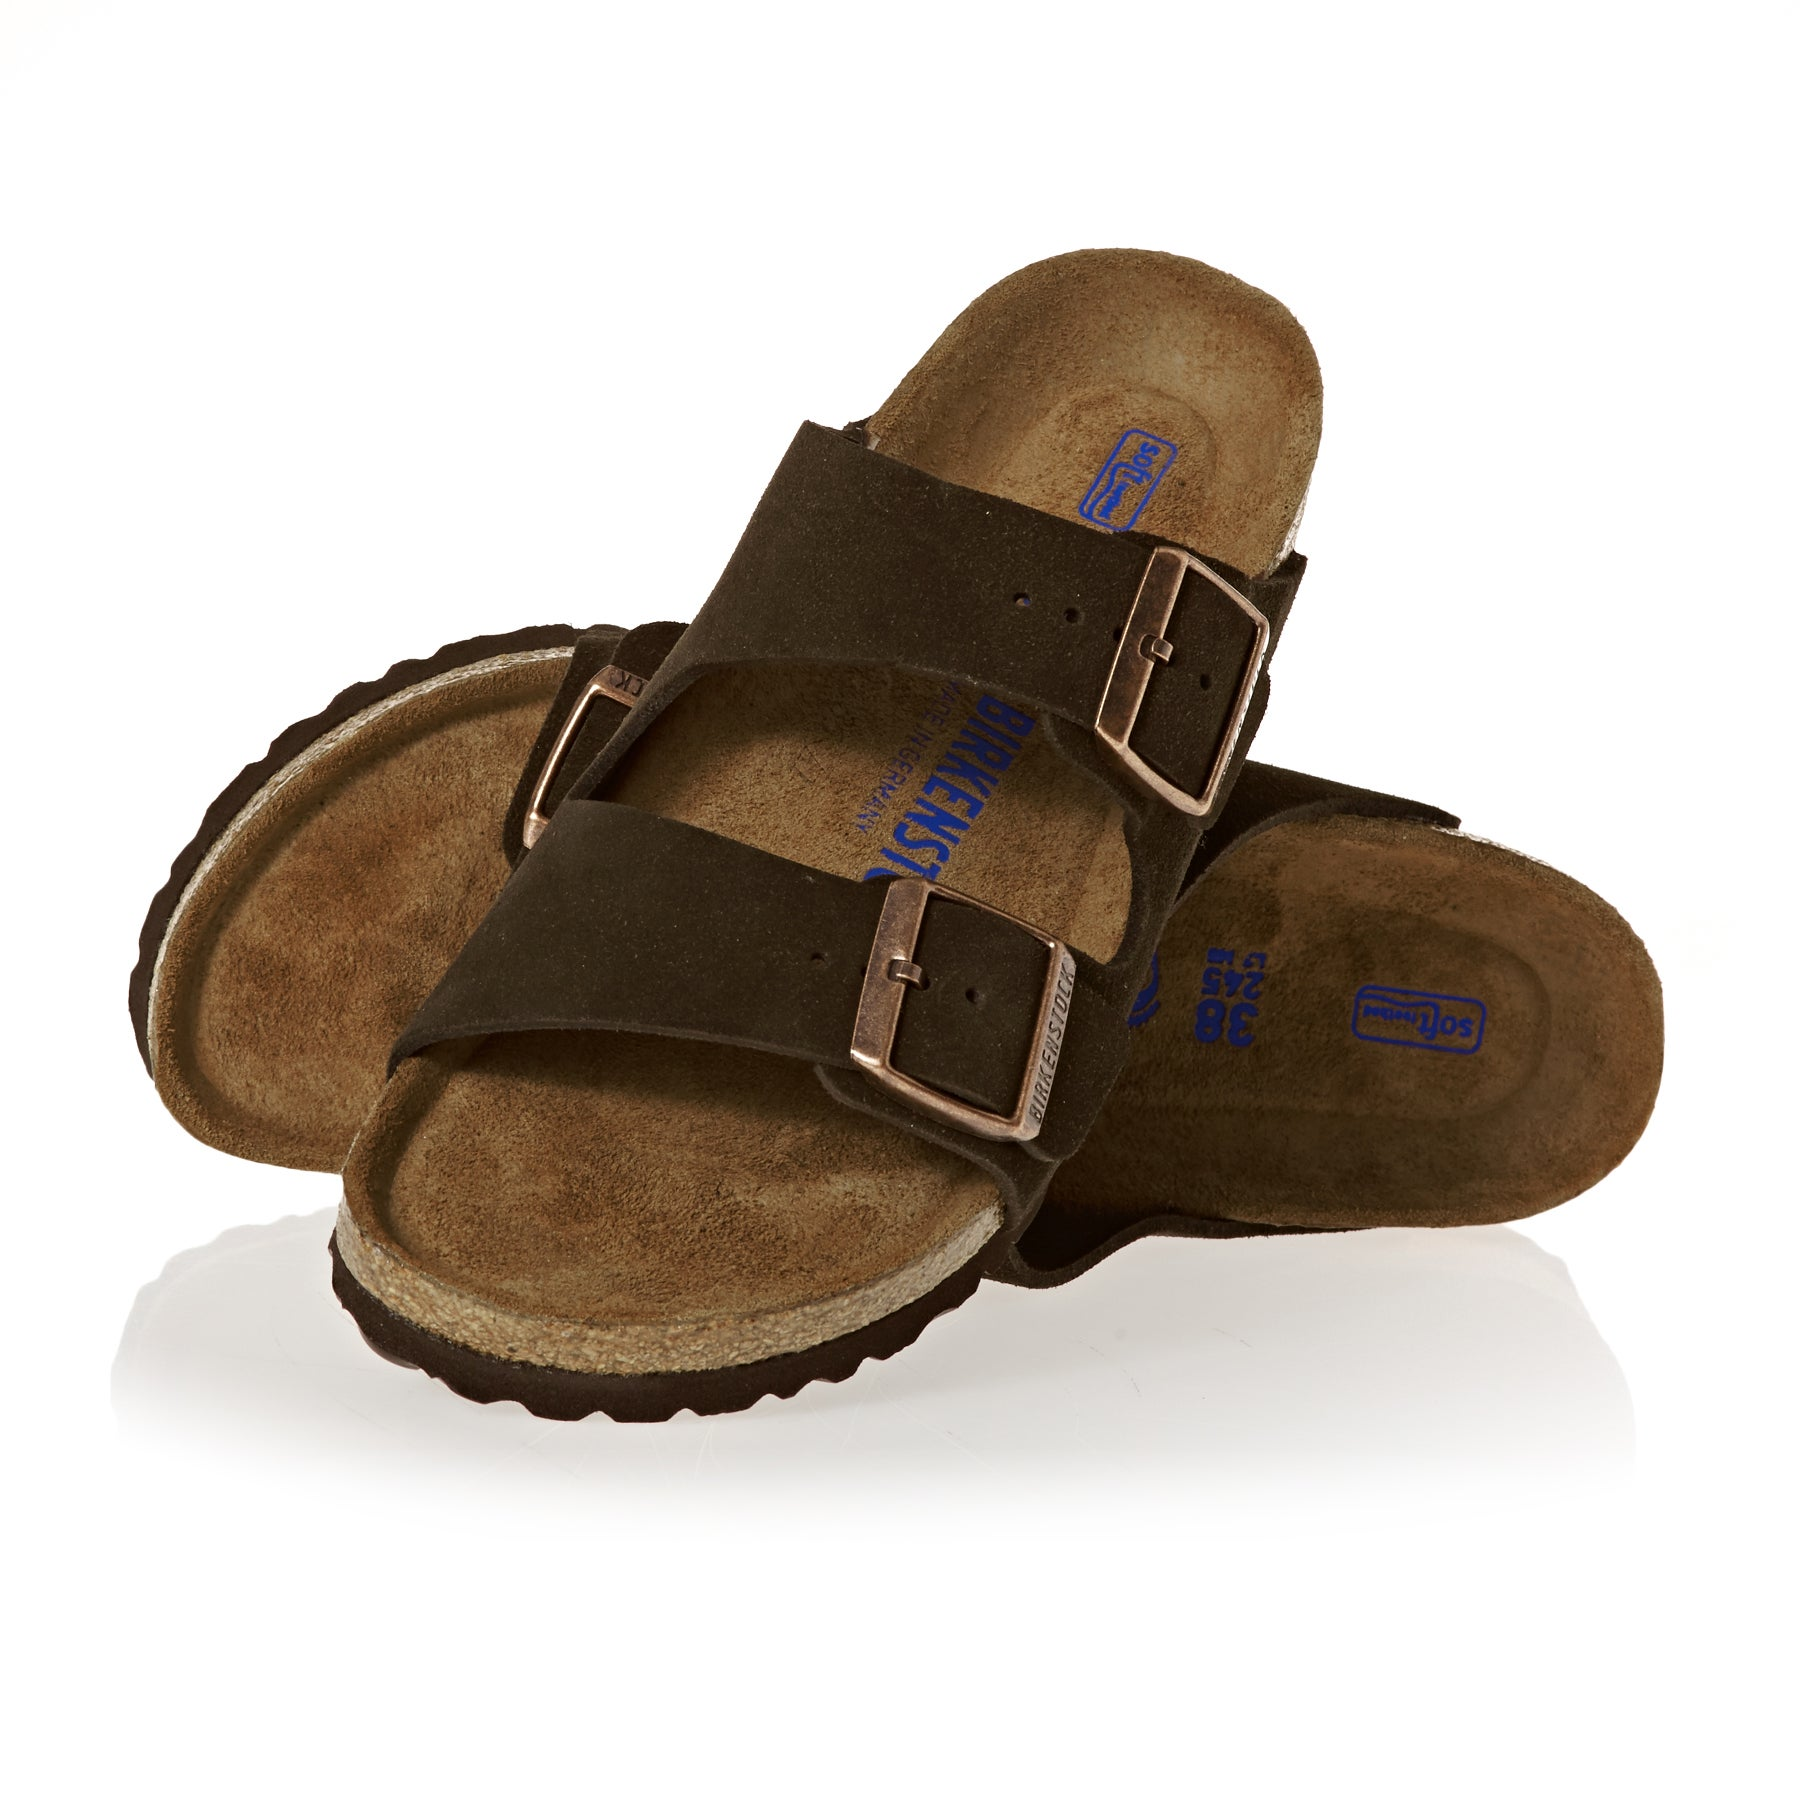 Birkenstock Arizona Suede Leather Soft Footbed Narrow Womens Sandals - Mocca